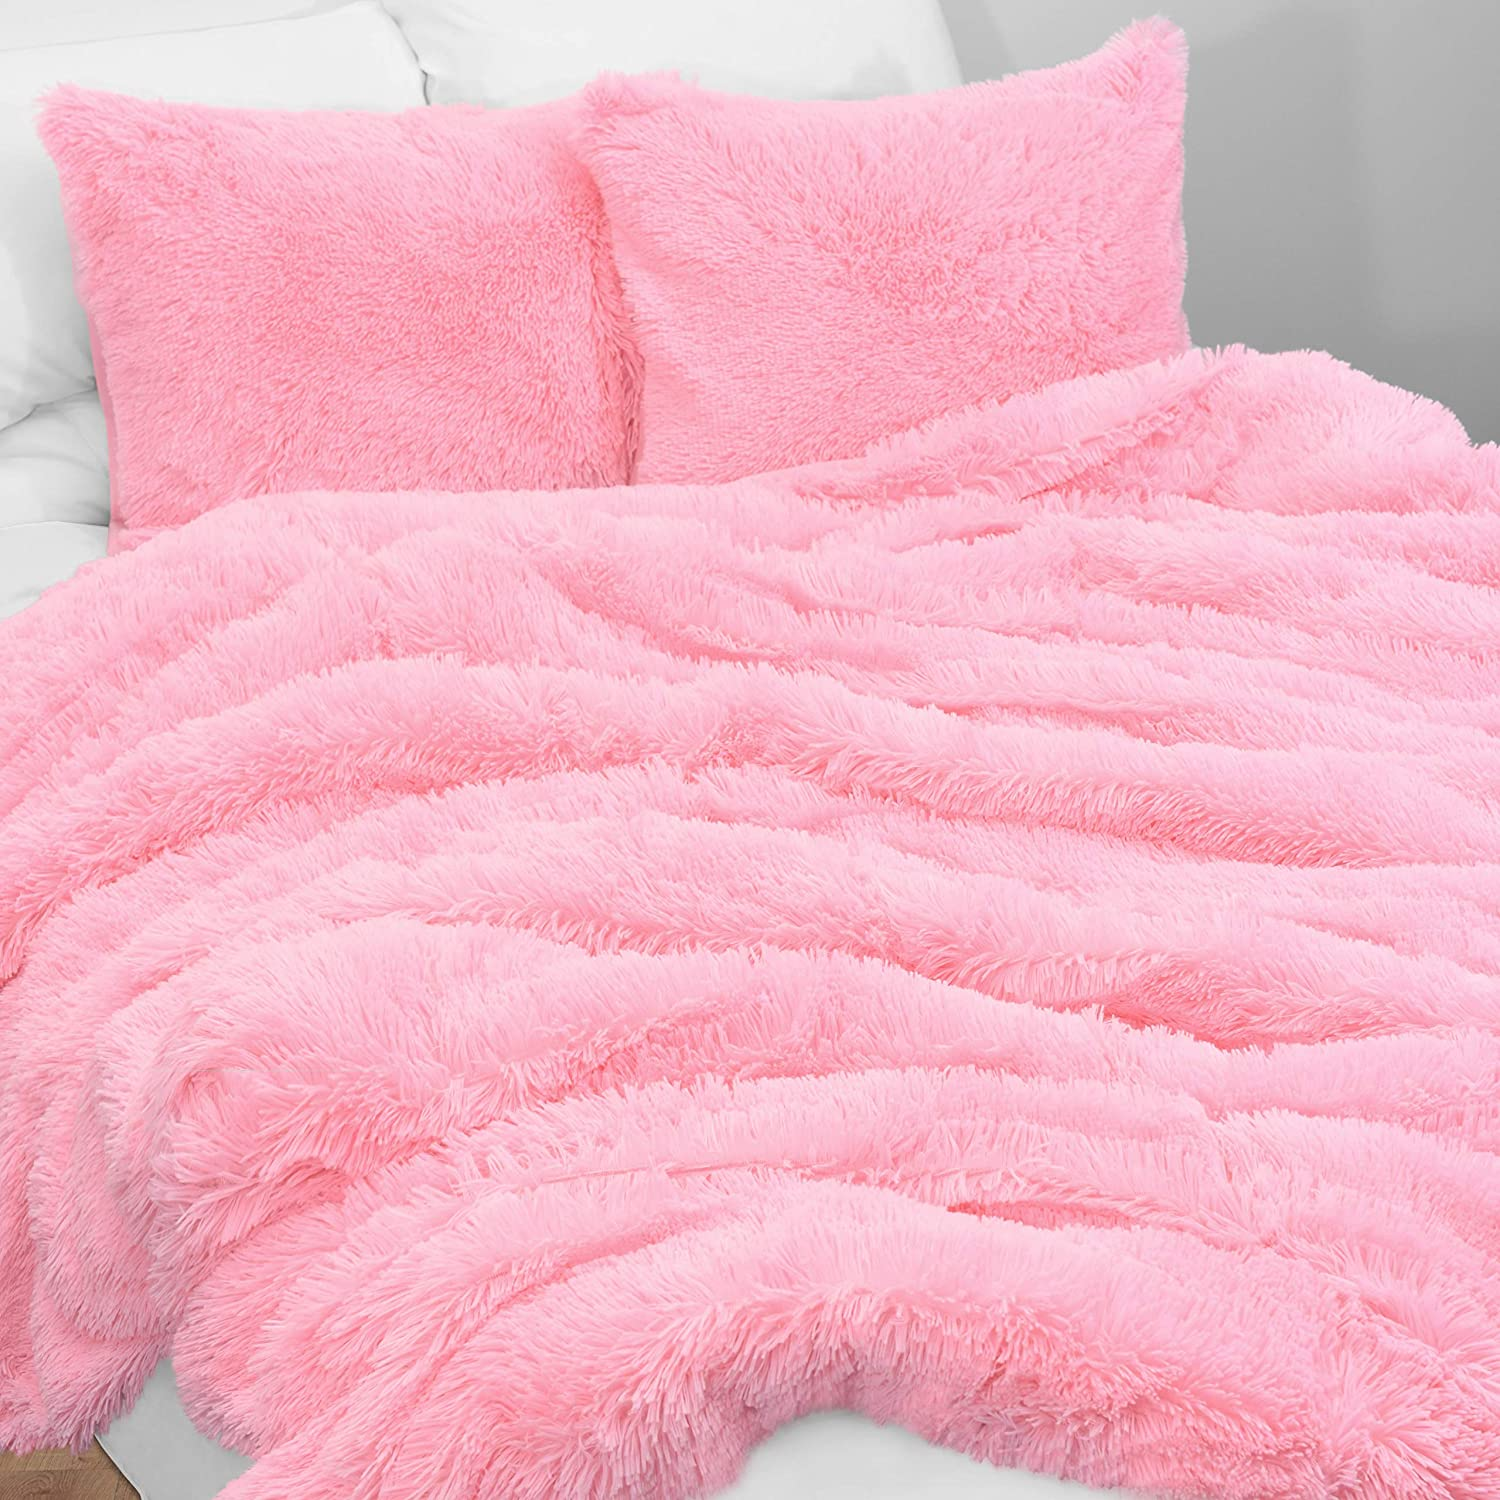 KB & Me Boho Pink Fuzzy Faux Fur Plush Duvet Comforter Cover and Sham 3 pc. Soft Shaggy Fluffy Full/Queen Size Bedding Set Luxury College Dorm Teen